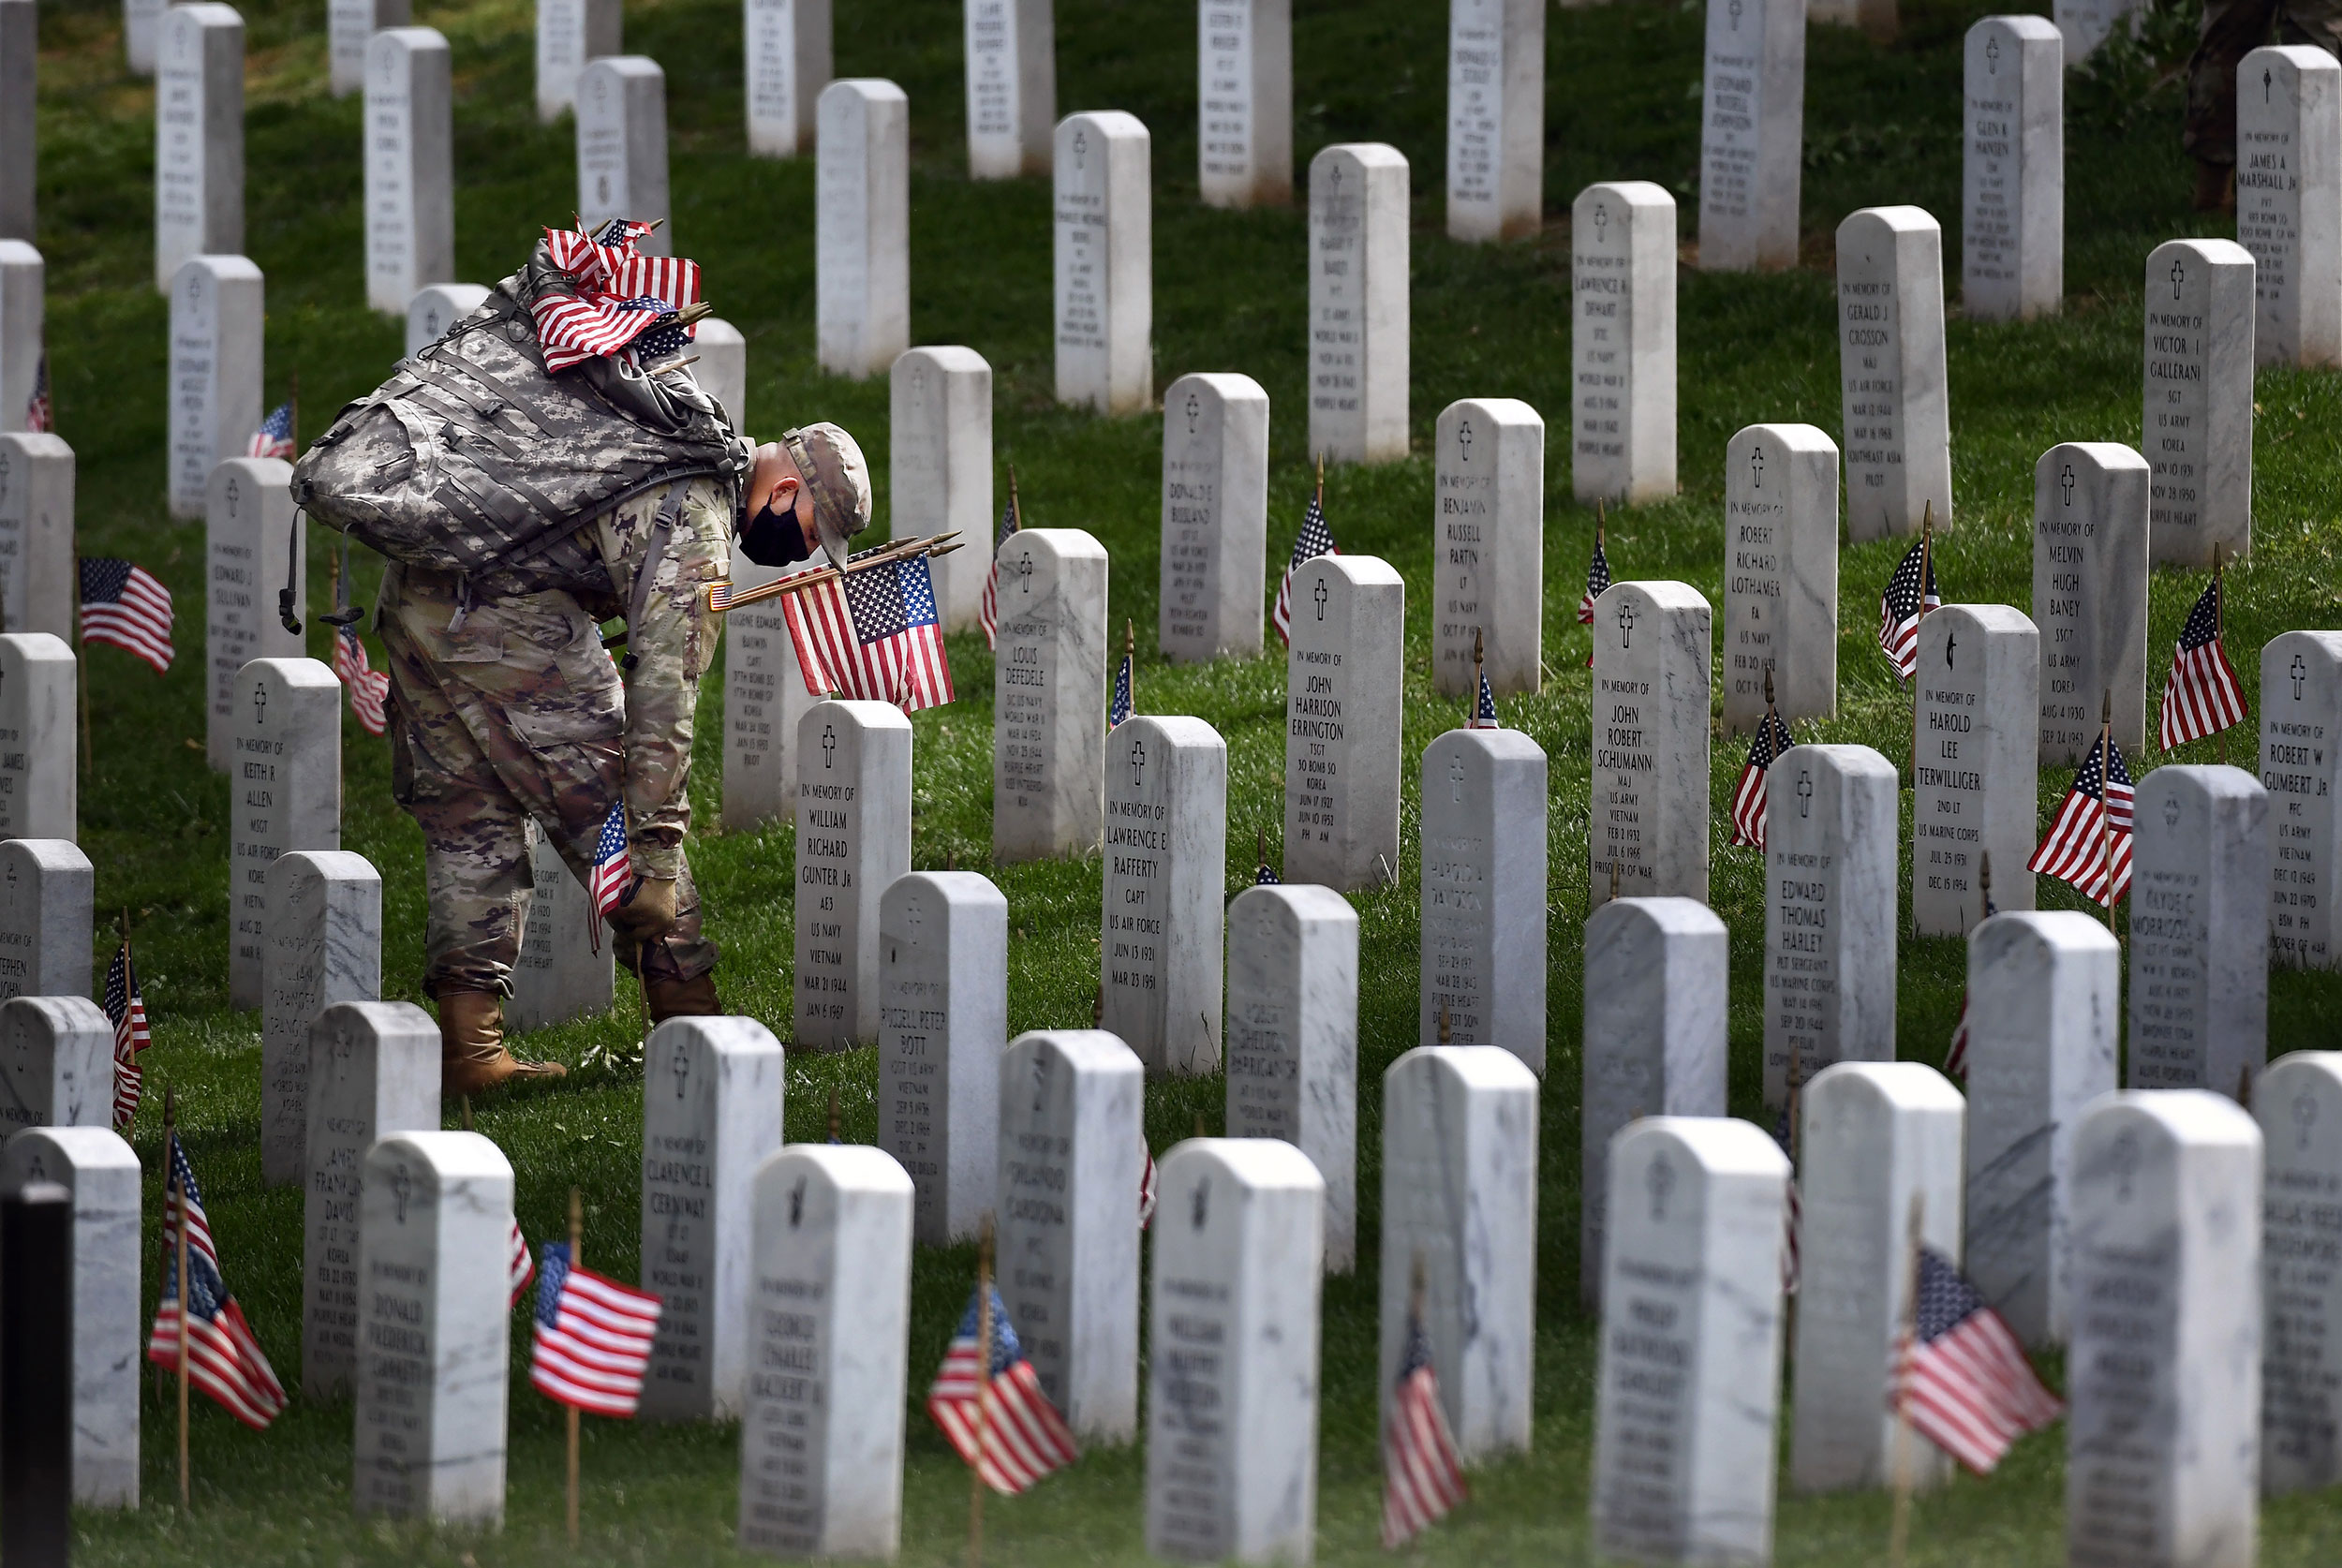 Solemn rituals remain but with new precautions at Arlington National Cemetery this Memorial Day